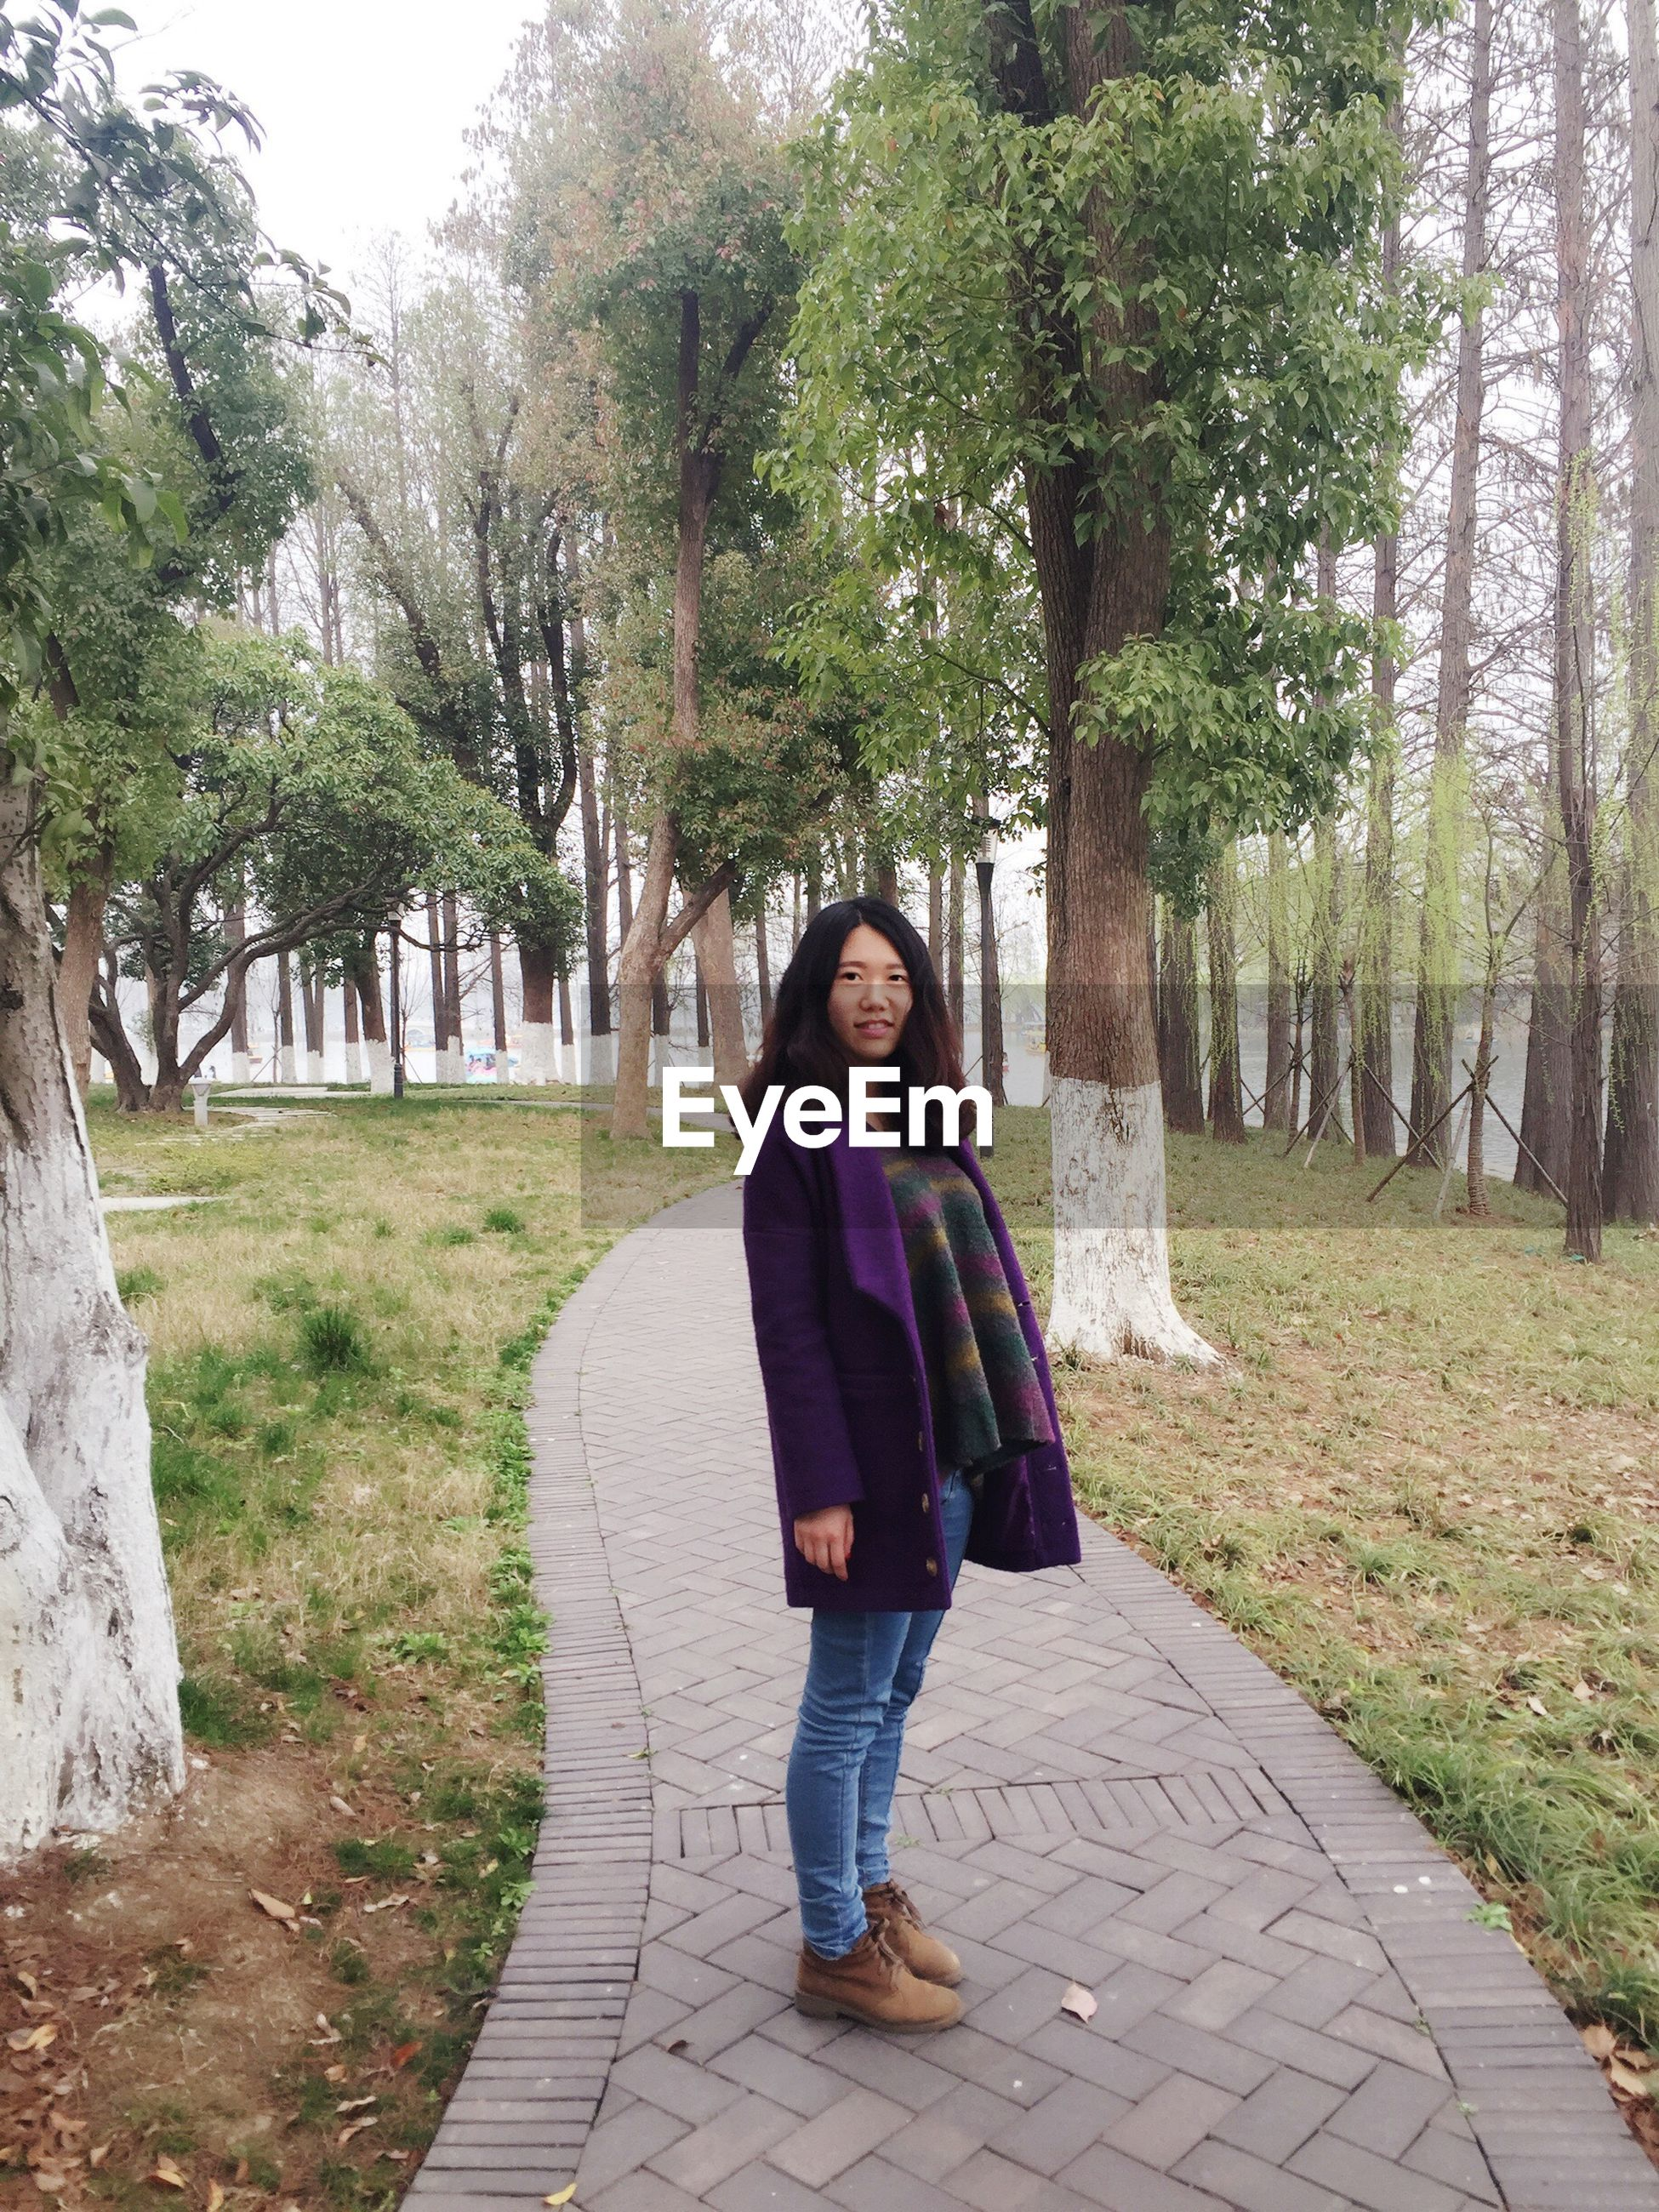 tree, lifestyles, casual clothing, full length, person, leisure activity, looking at camera, young adult, portrait, footpath, front view, park - man made space, young women, grass, smiling, the way forward, standing, day